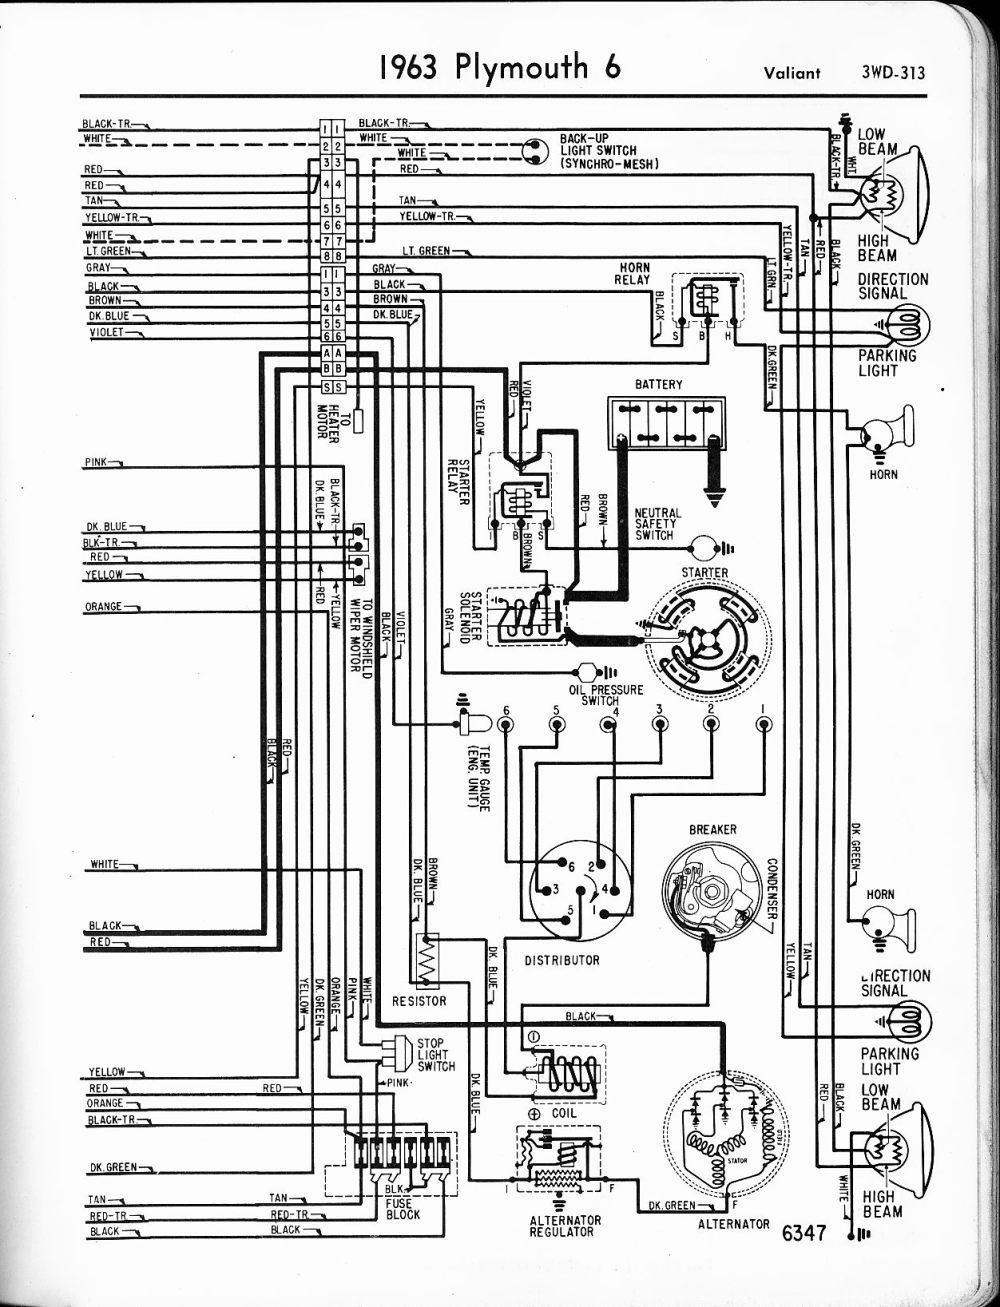 medium resolution of 1973 plymouth wiring diagram data wiring diagram1973 plymouth wiring diagrams completed wiring diagrams 74 nova dash